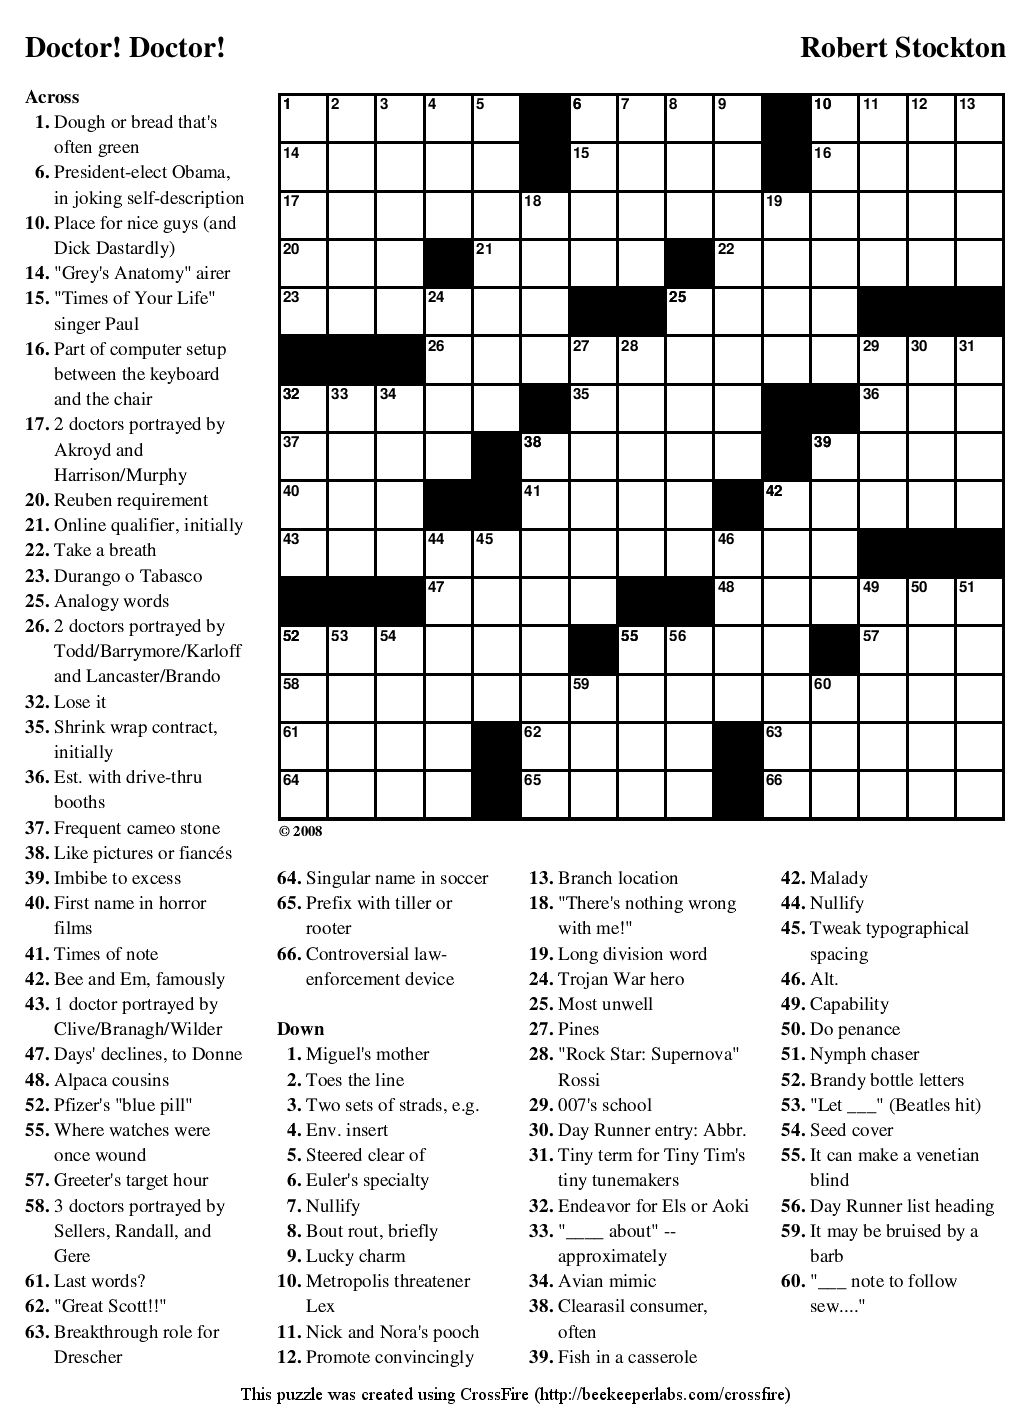 Crossword Puzzles Printable - Yahoo Image Search Results | Crossword - Printable Crossword Puzzles #1